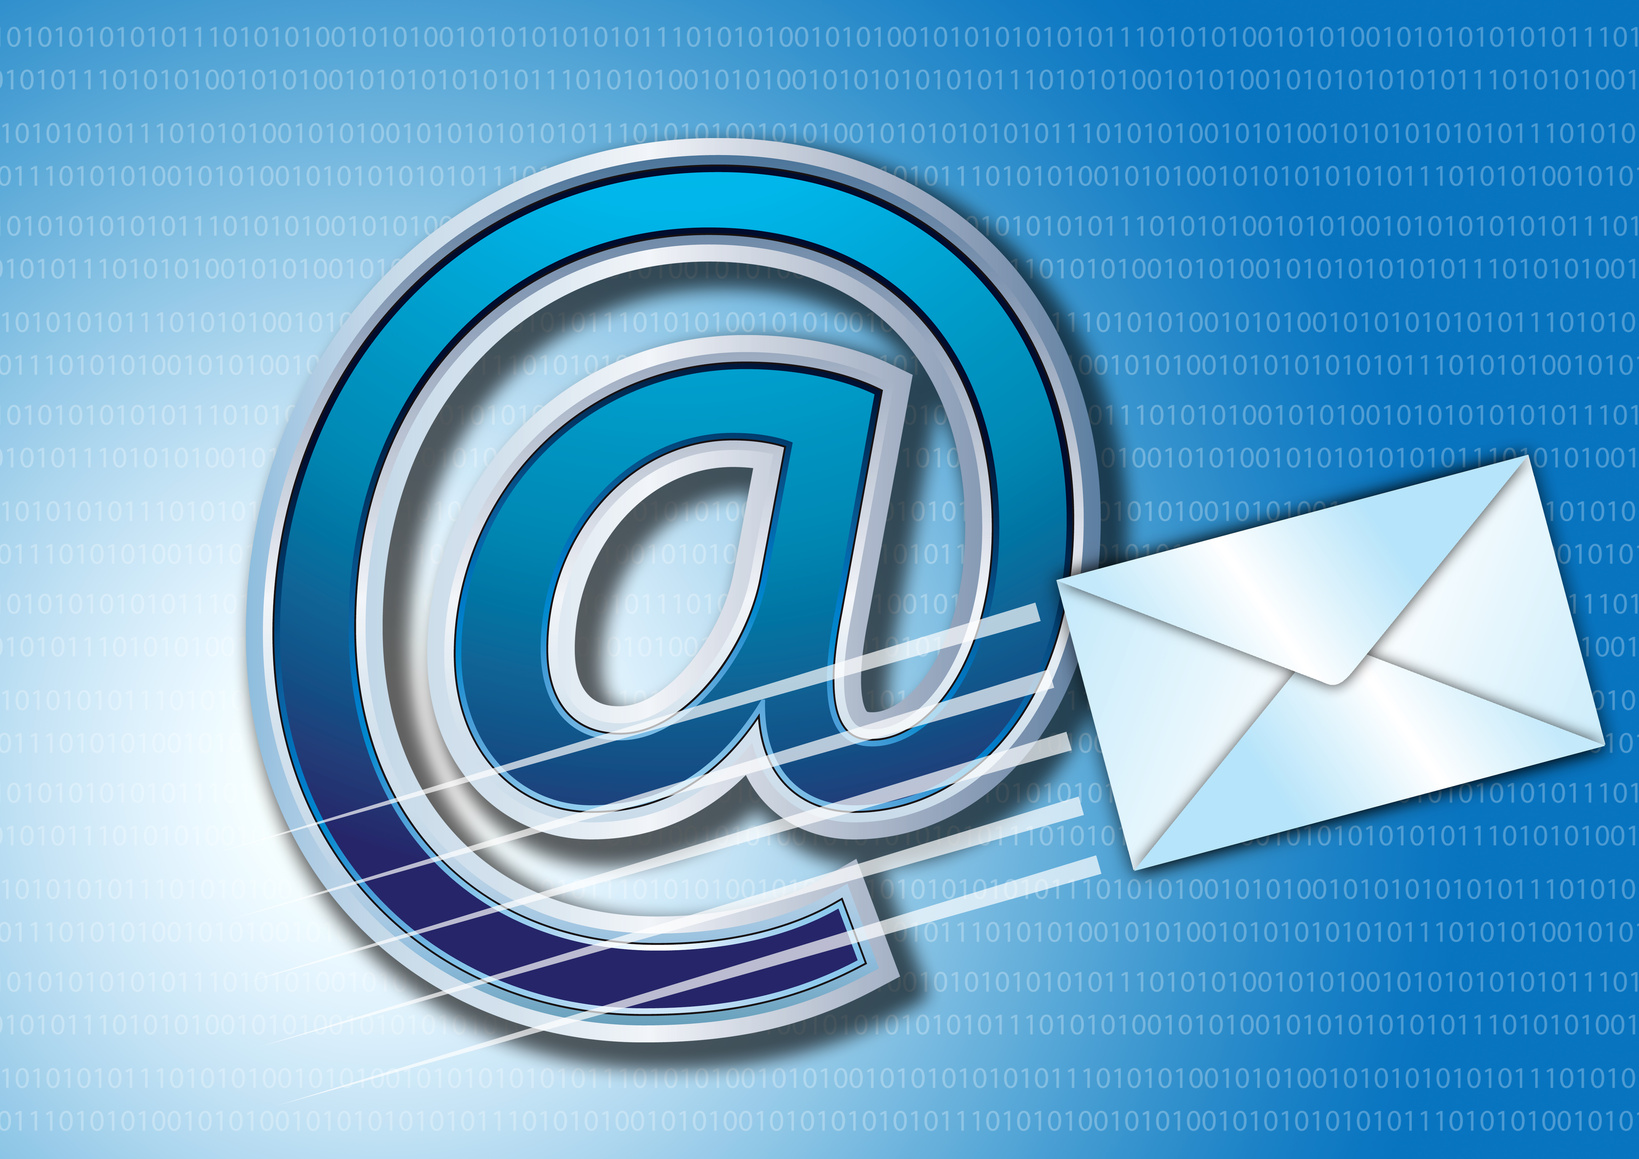 Tendencias del Marketing Digital 2015: Marketing por Emailing